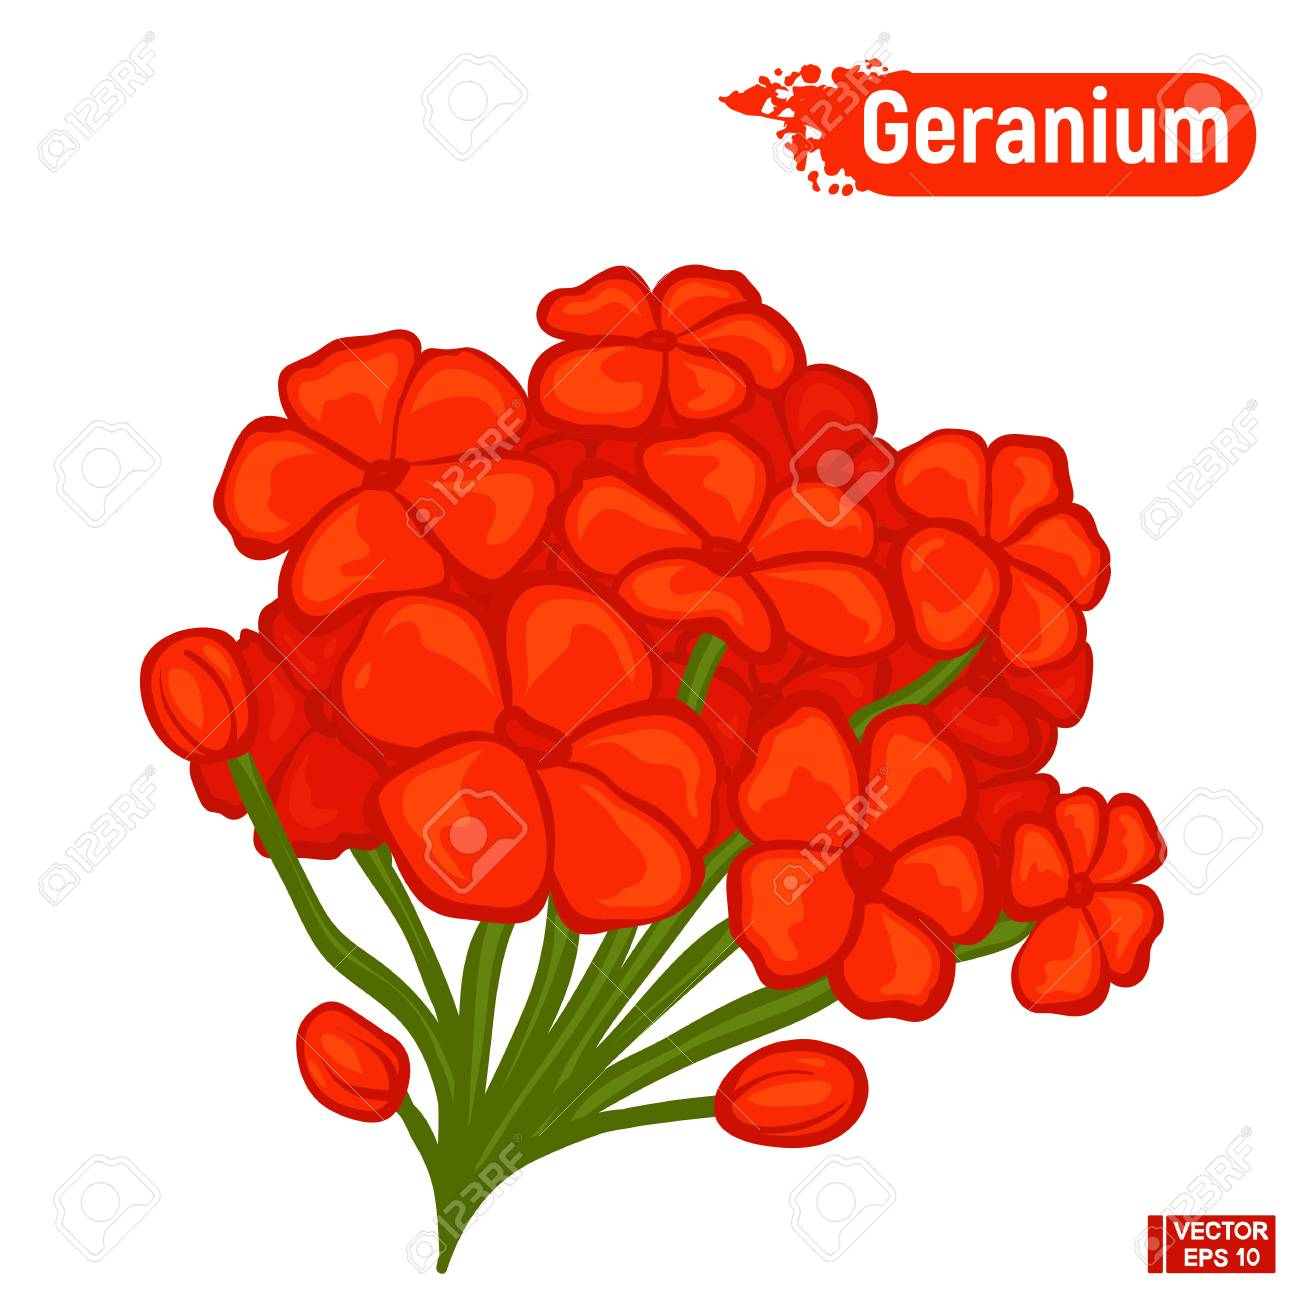 Vector Image. Bright Red Geranium Flowers. Beautiful Blossoming ...